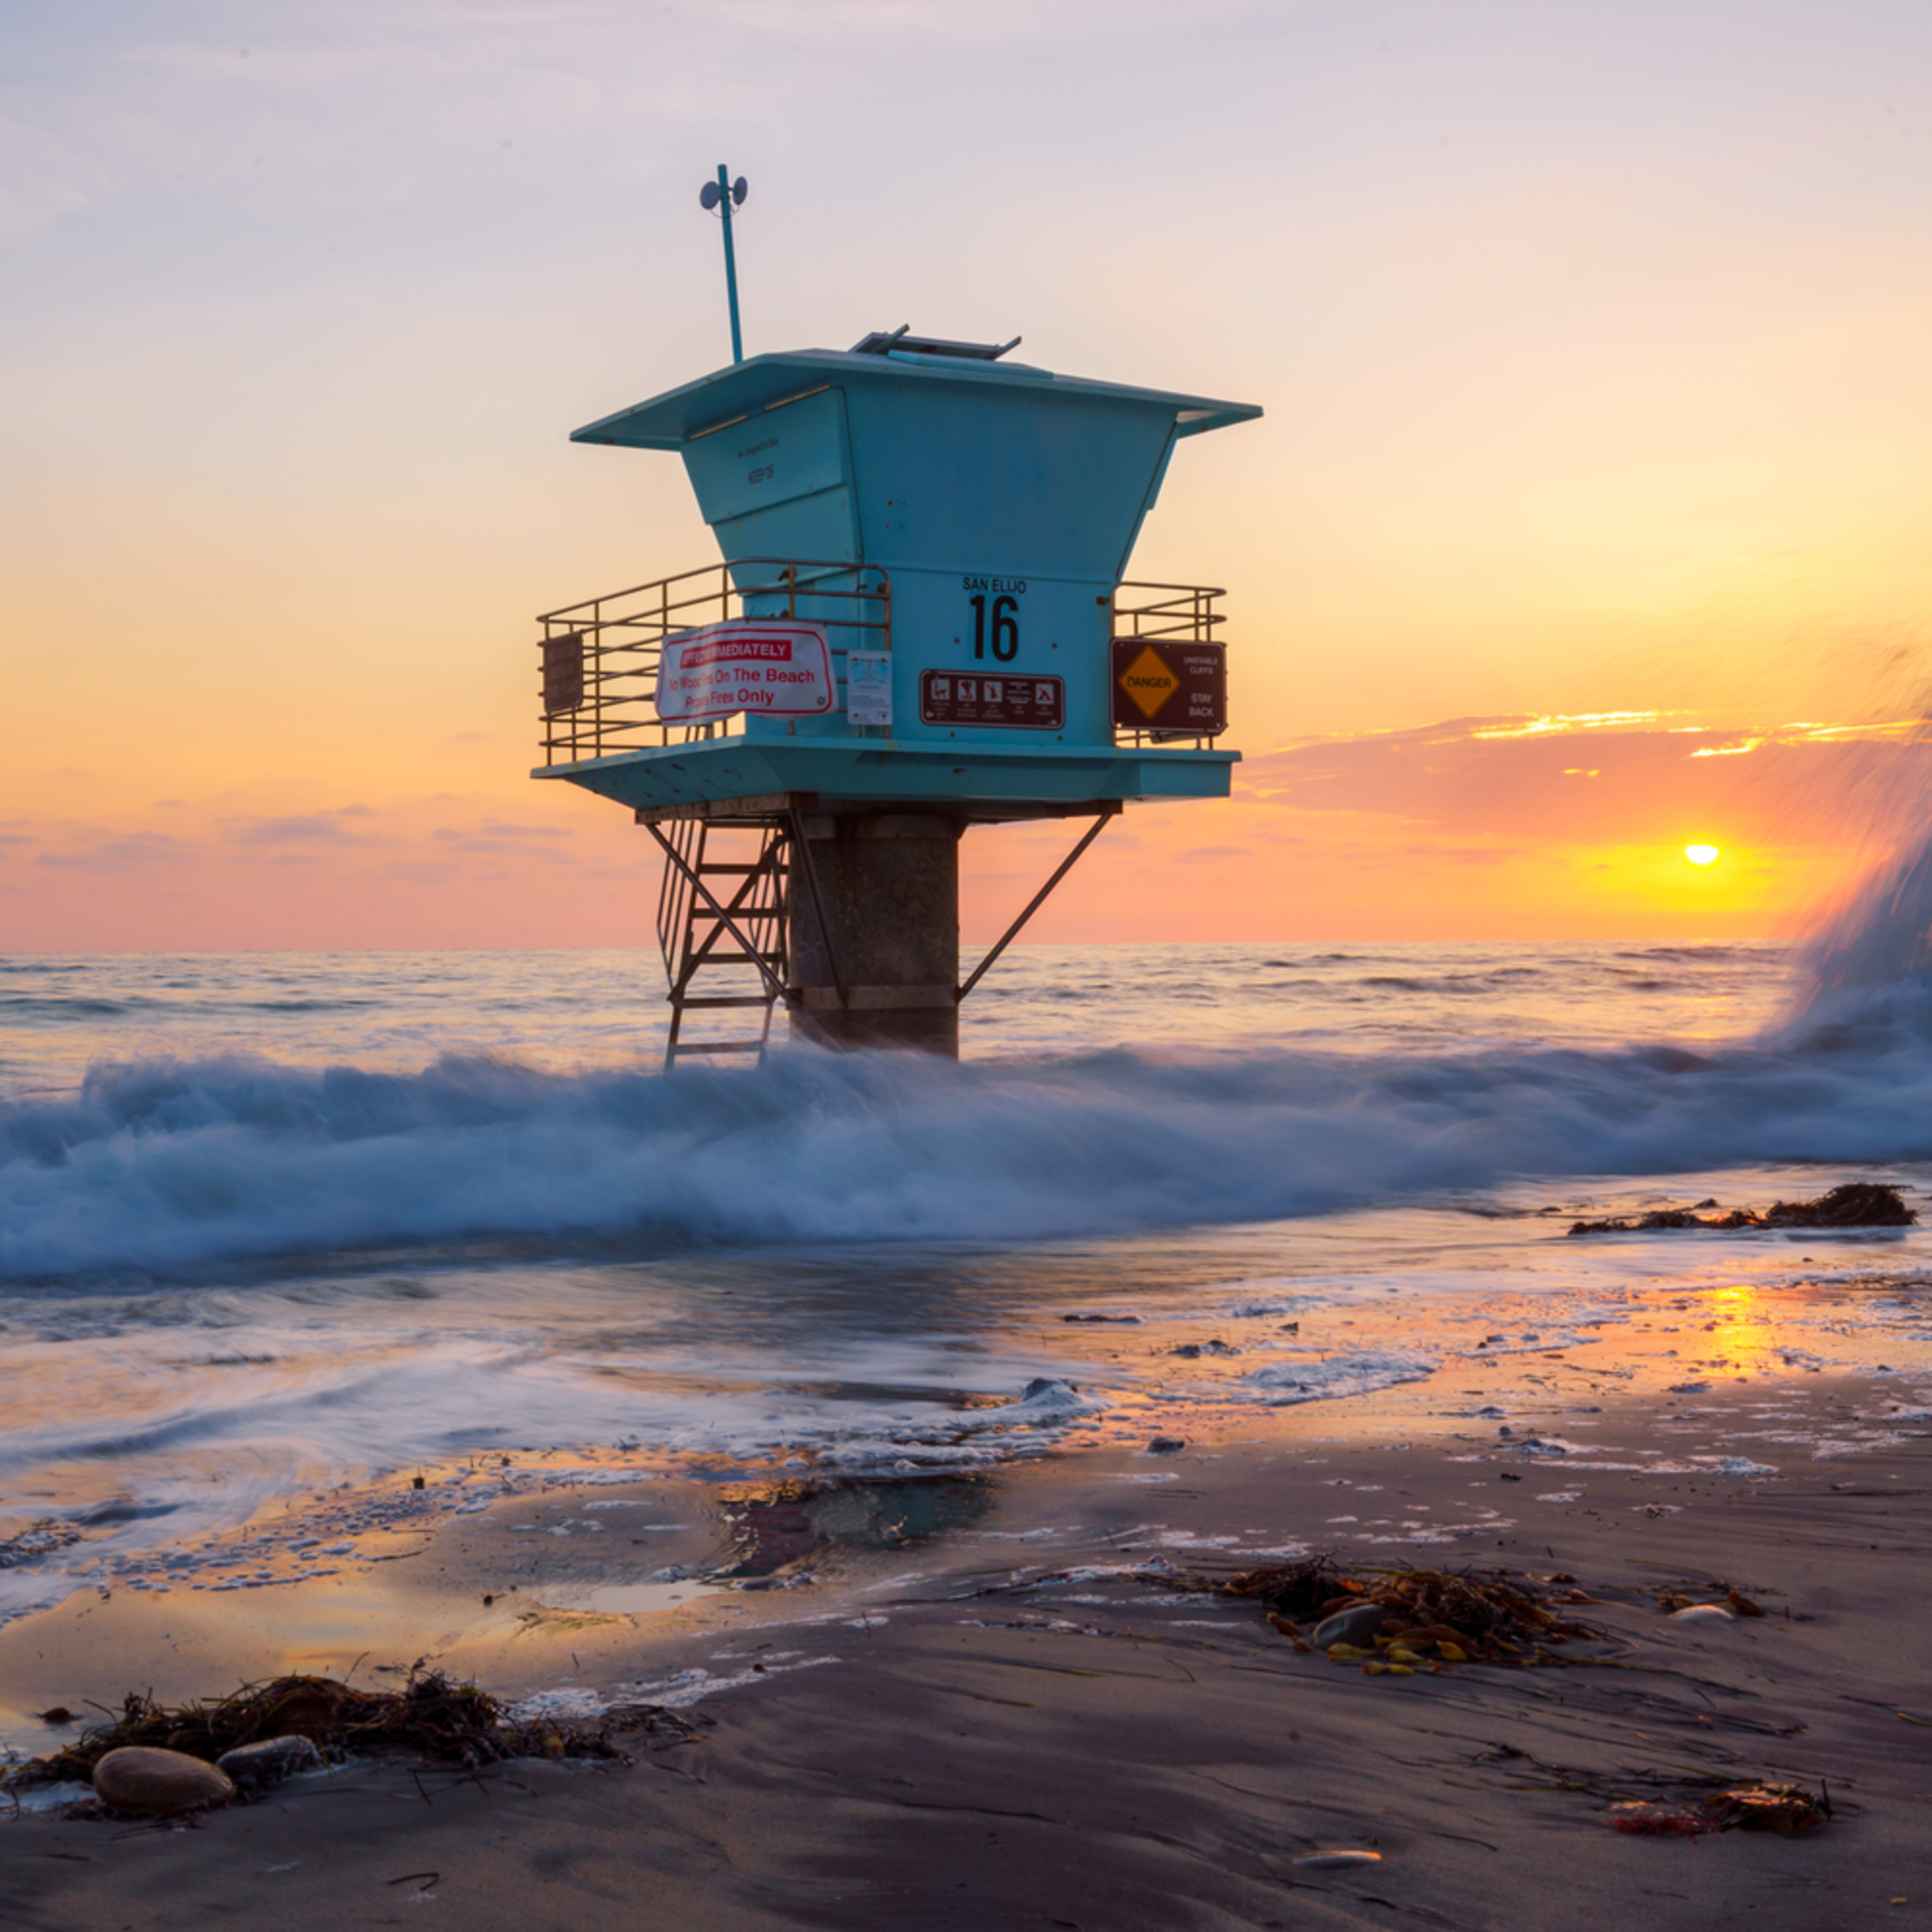 Life guard tower and waves on rocks in encinitas california  lgdm3c